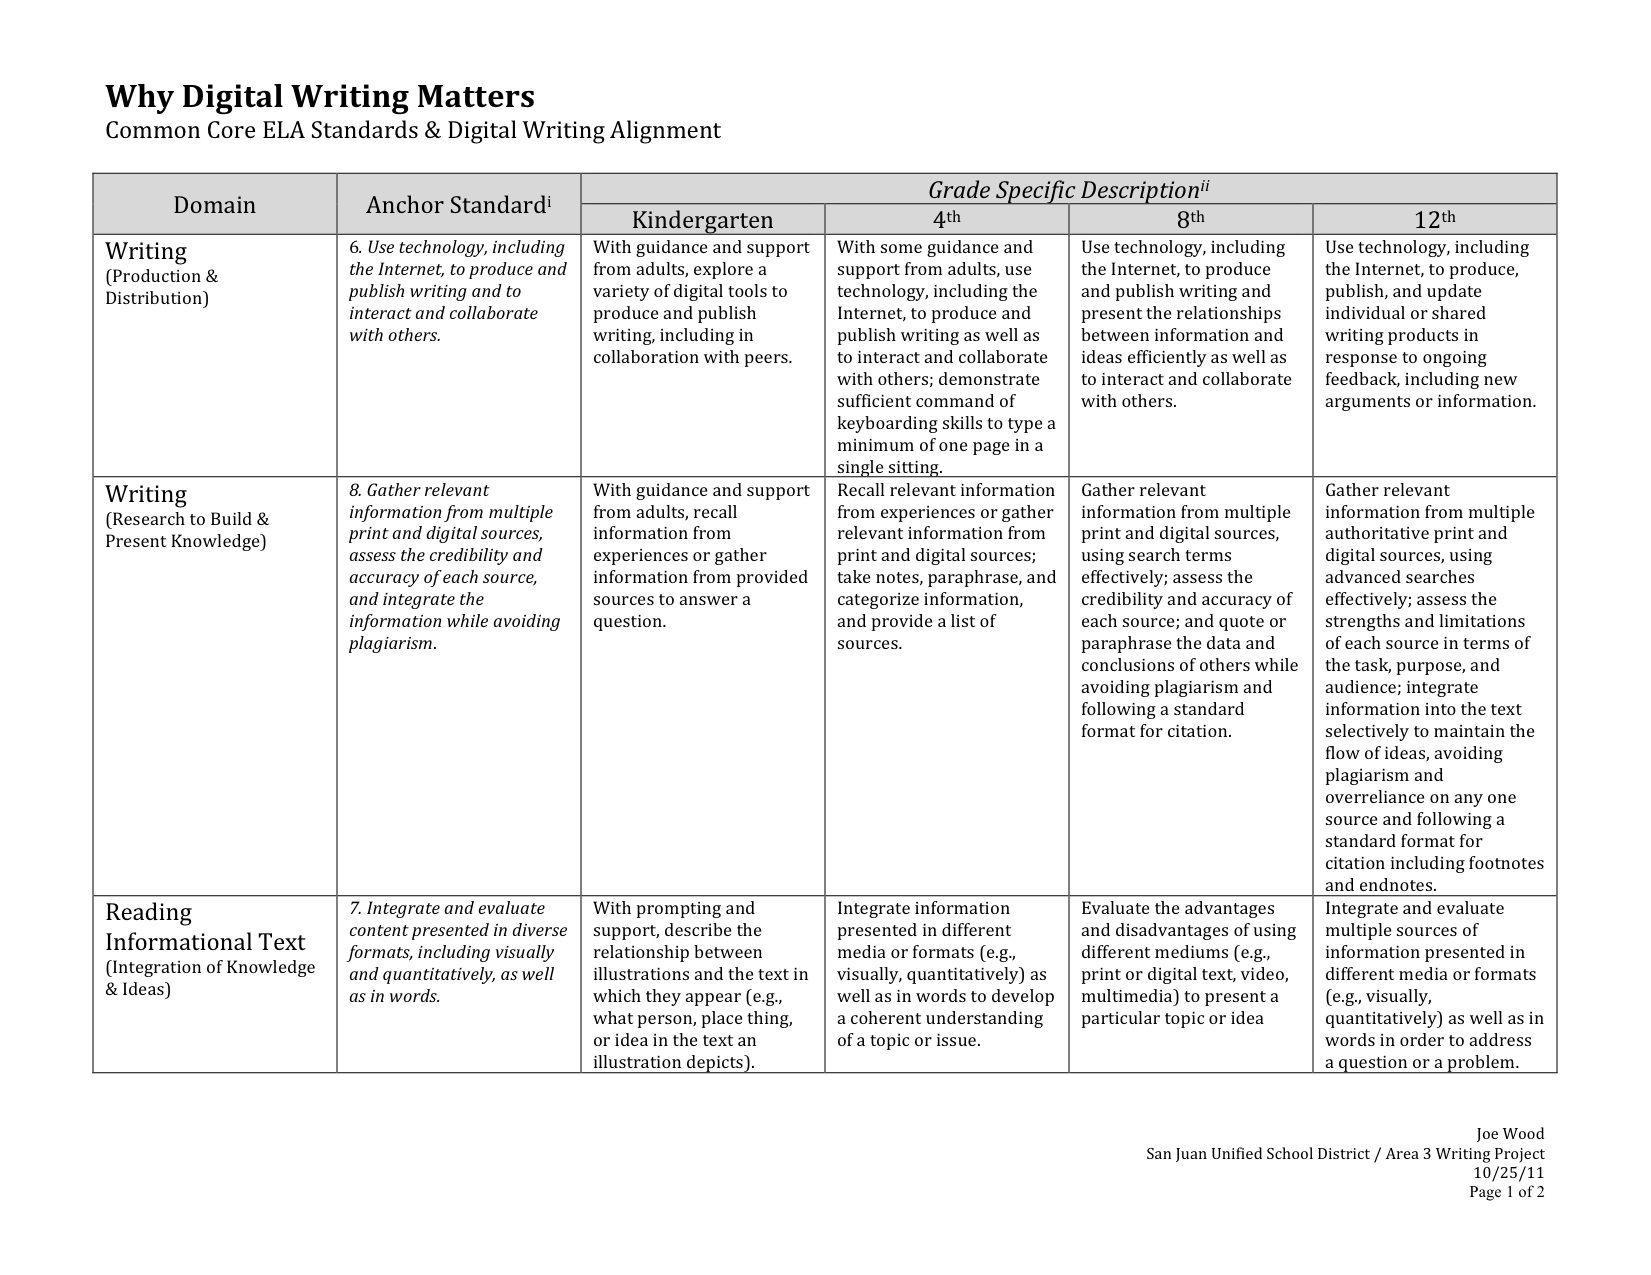 002 Research Paper High School History Rubric Why Digital Writing Matters According To The Common Core Ela Formidable Full